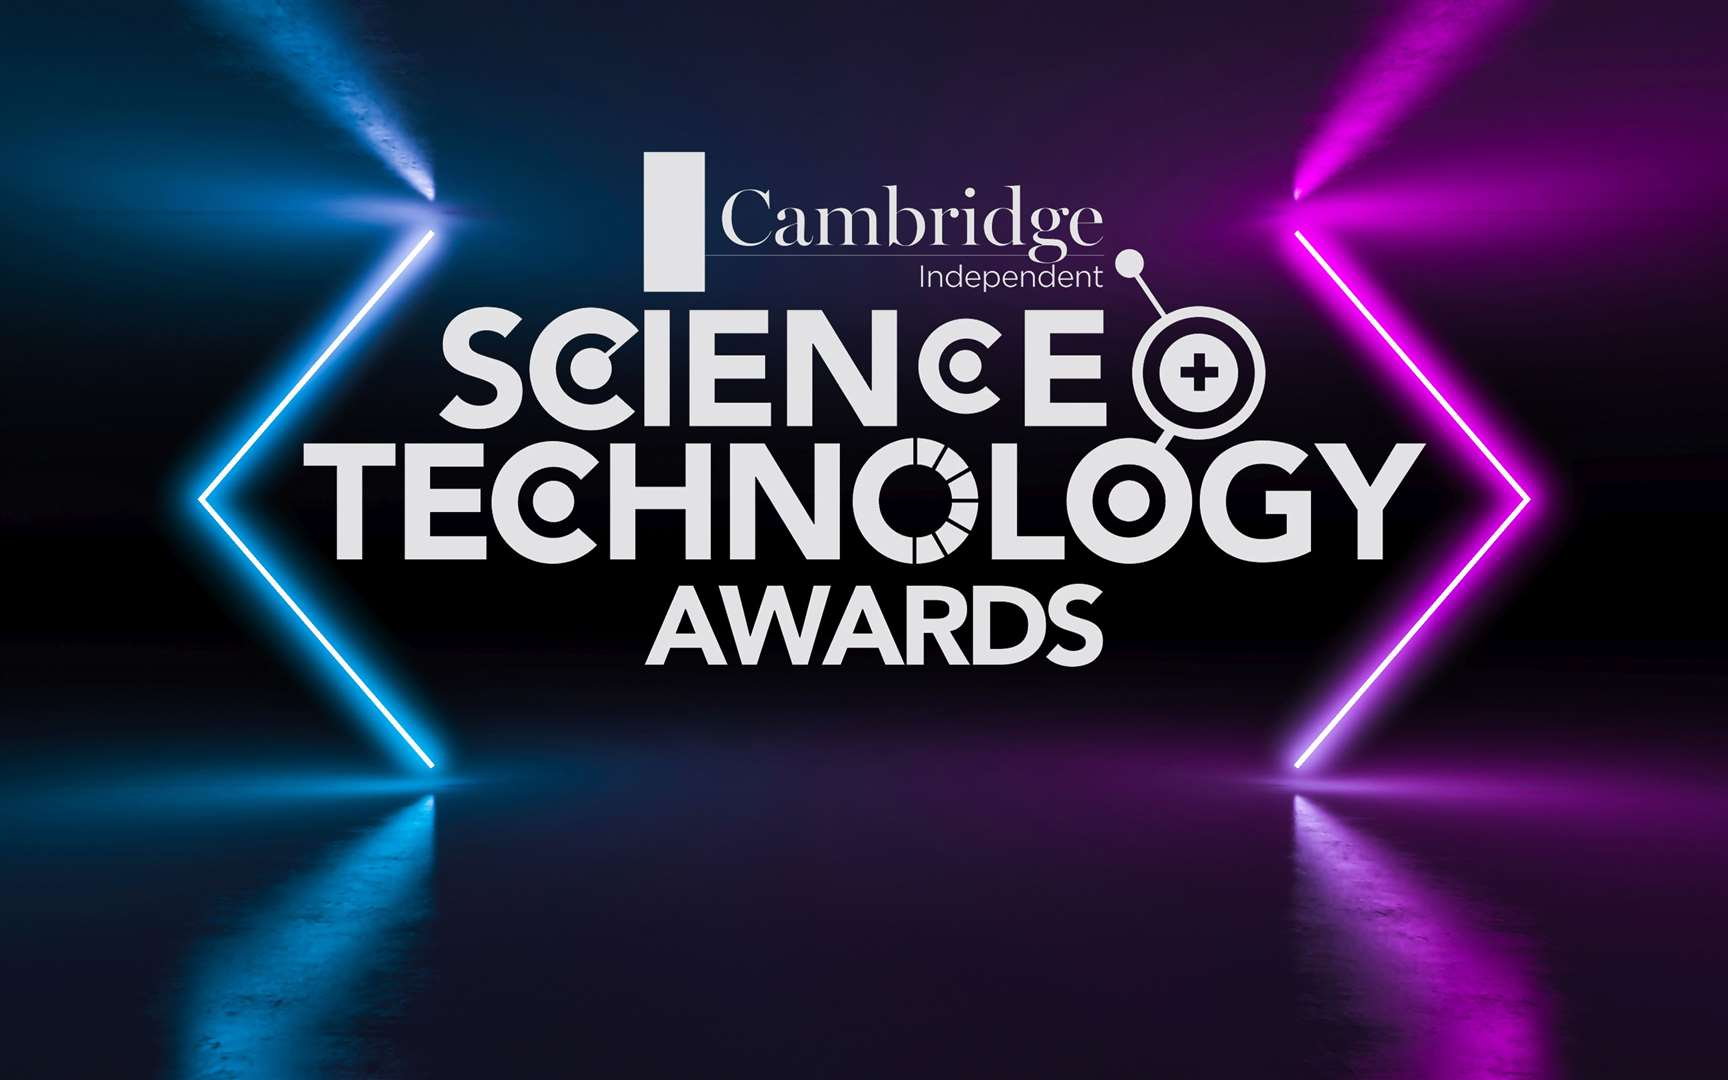 Sagentia is sponsoring the Covid-19 Response Award in the Cambridge Independent Science and Technology Awards 2020